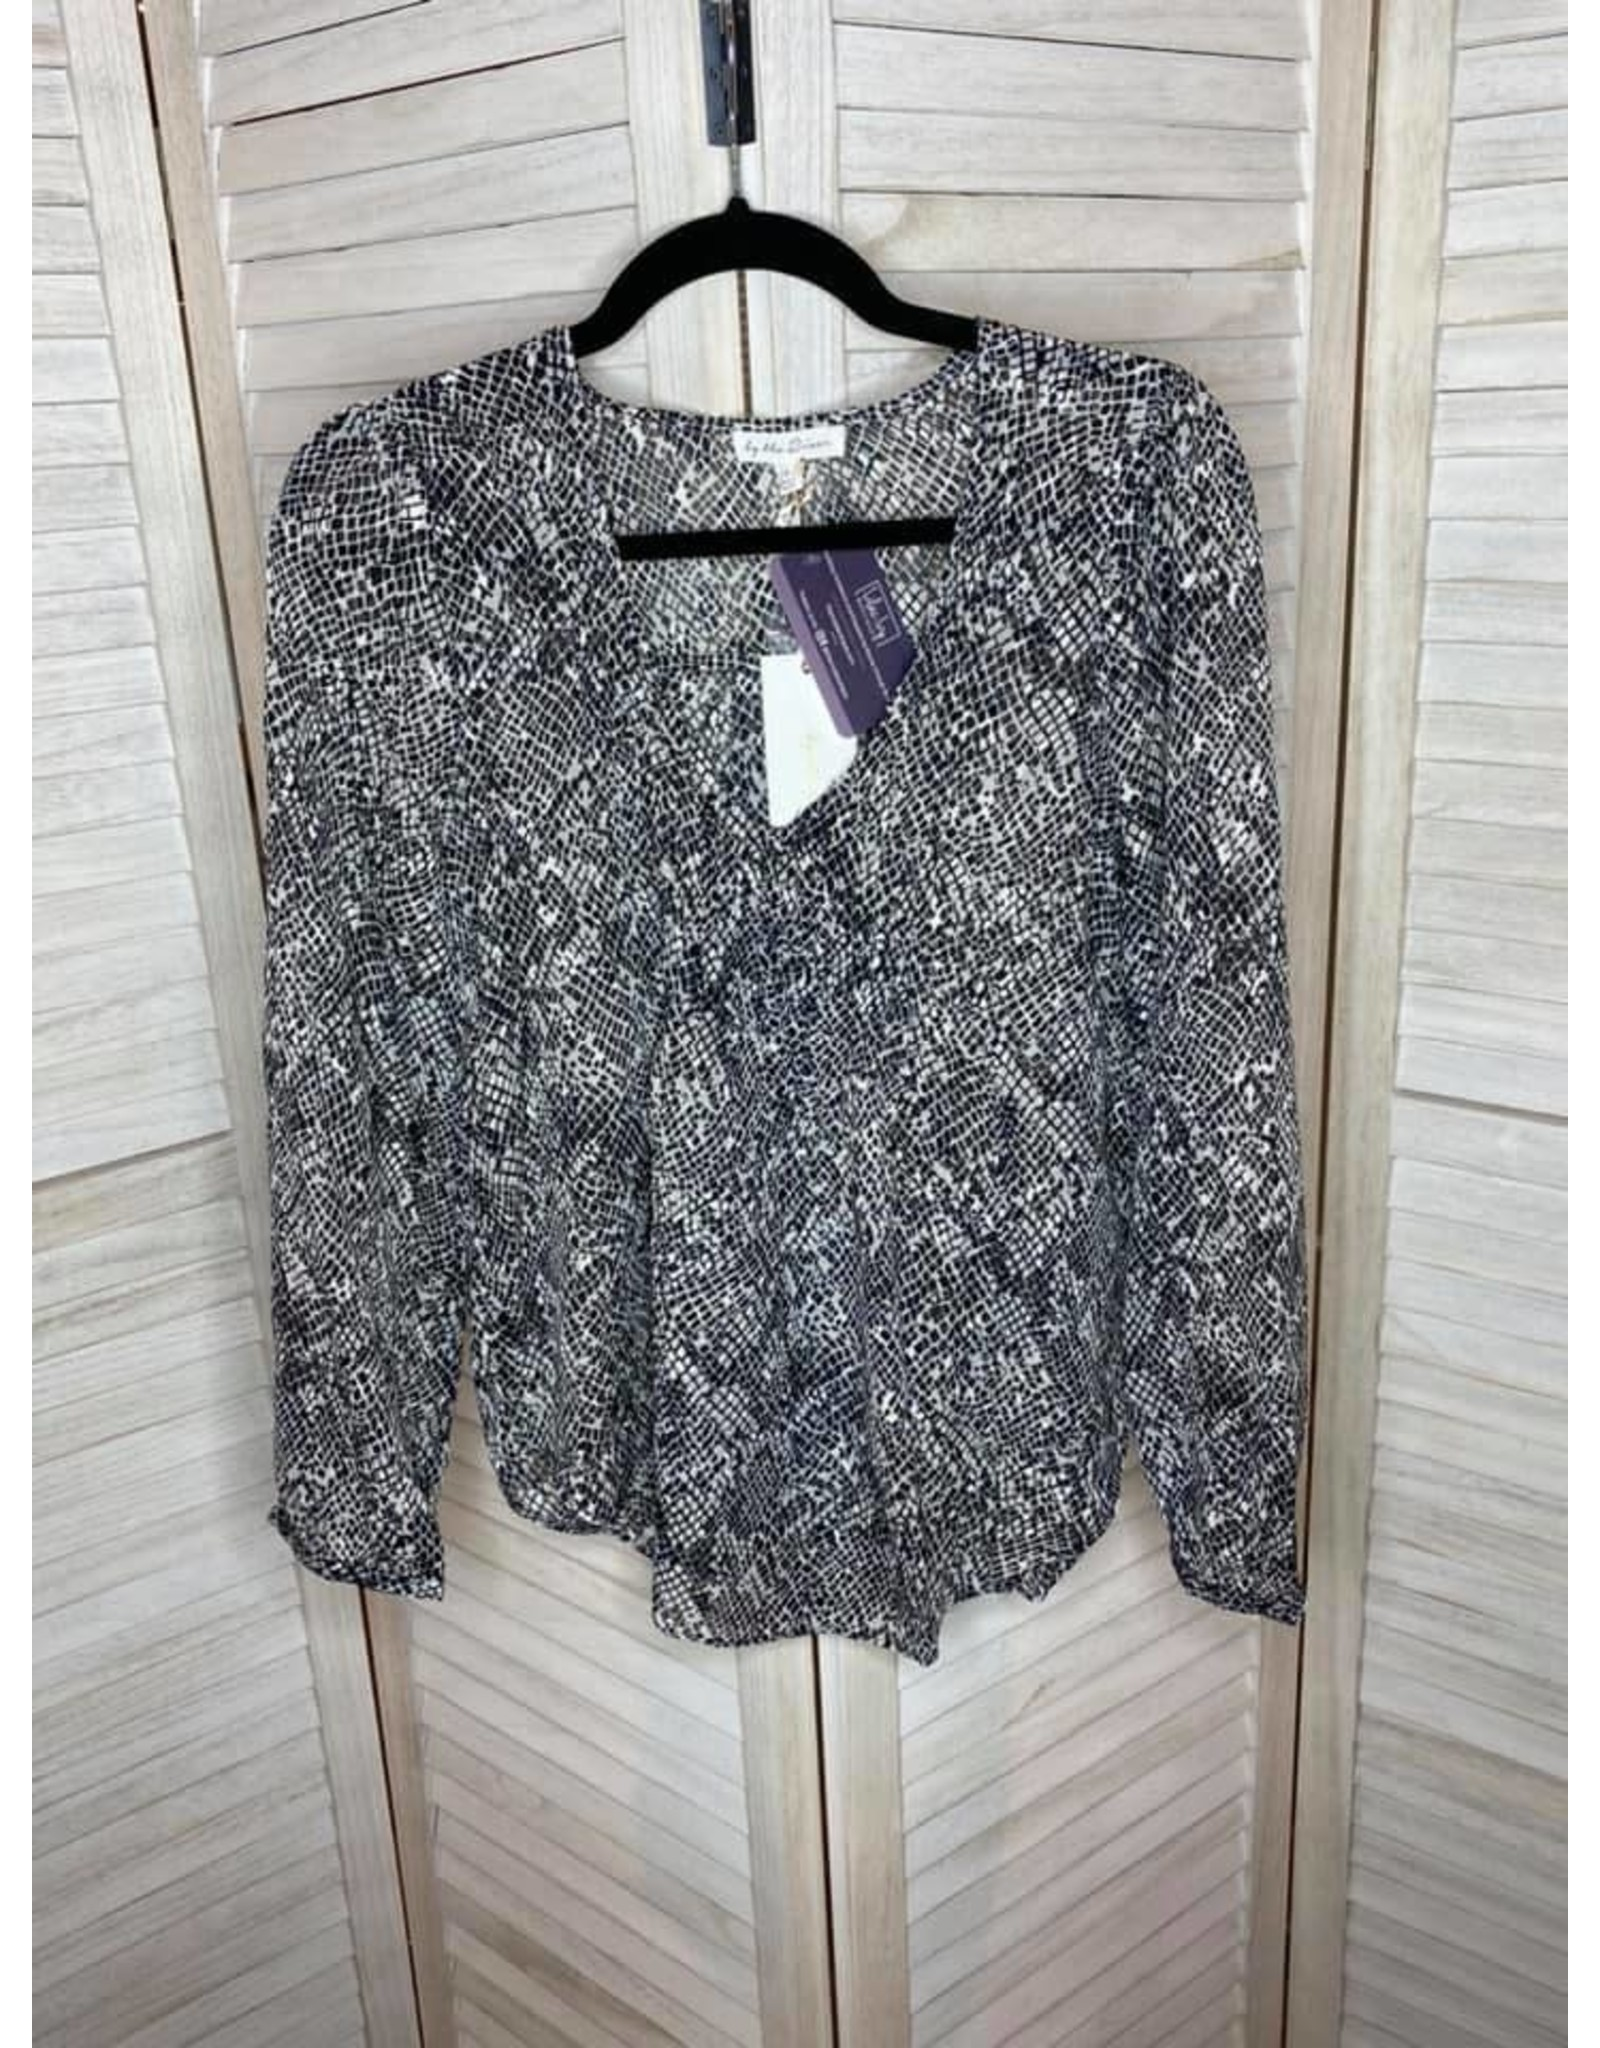 Blue Pepper Black And Cream Snakeskin Print V-Neck Button Front Long Sleeve Top